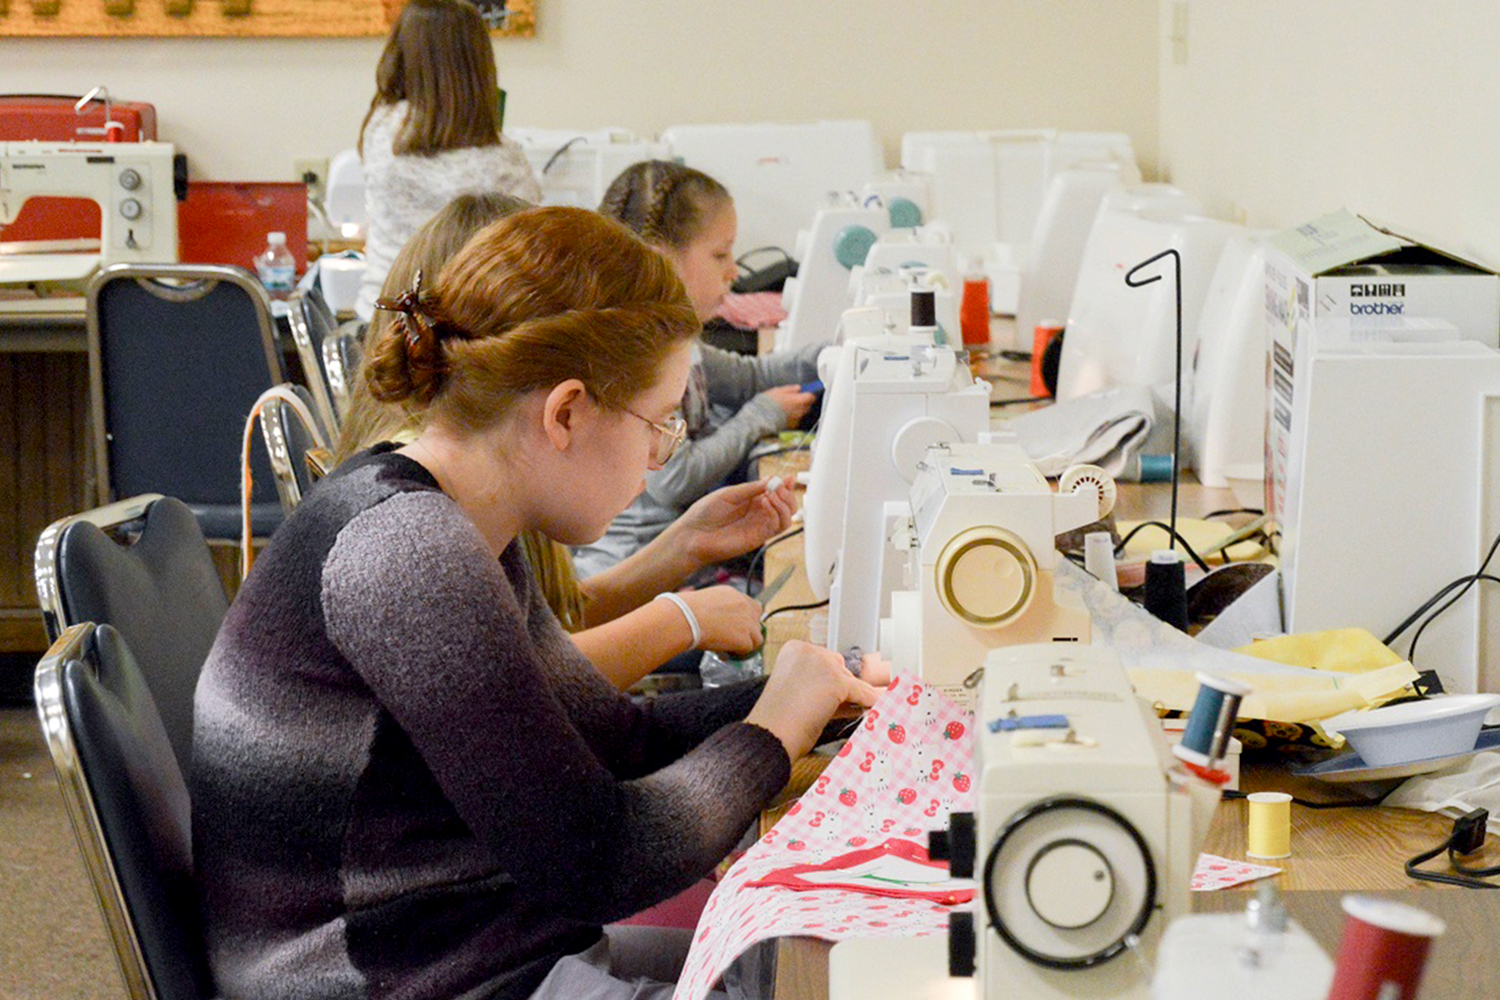 Piece by piece, 4-H members stitch together hope for children battling cancer